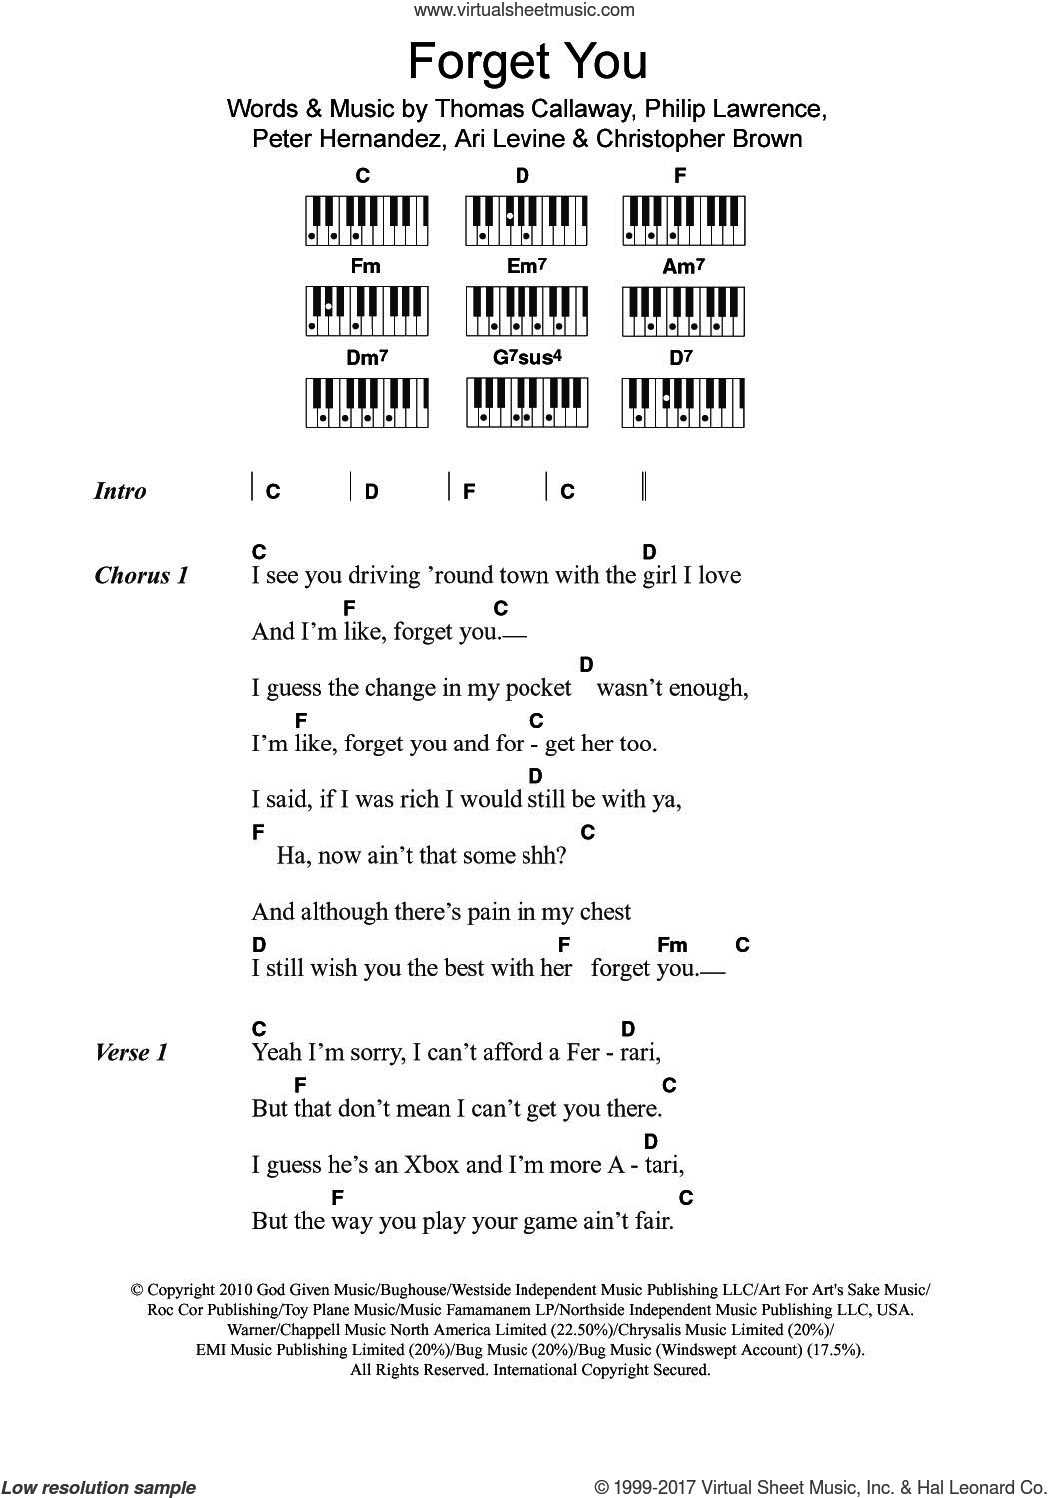 Green Forget You Sheet Music For Piano Solo Chords Lyrics Melody